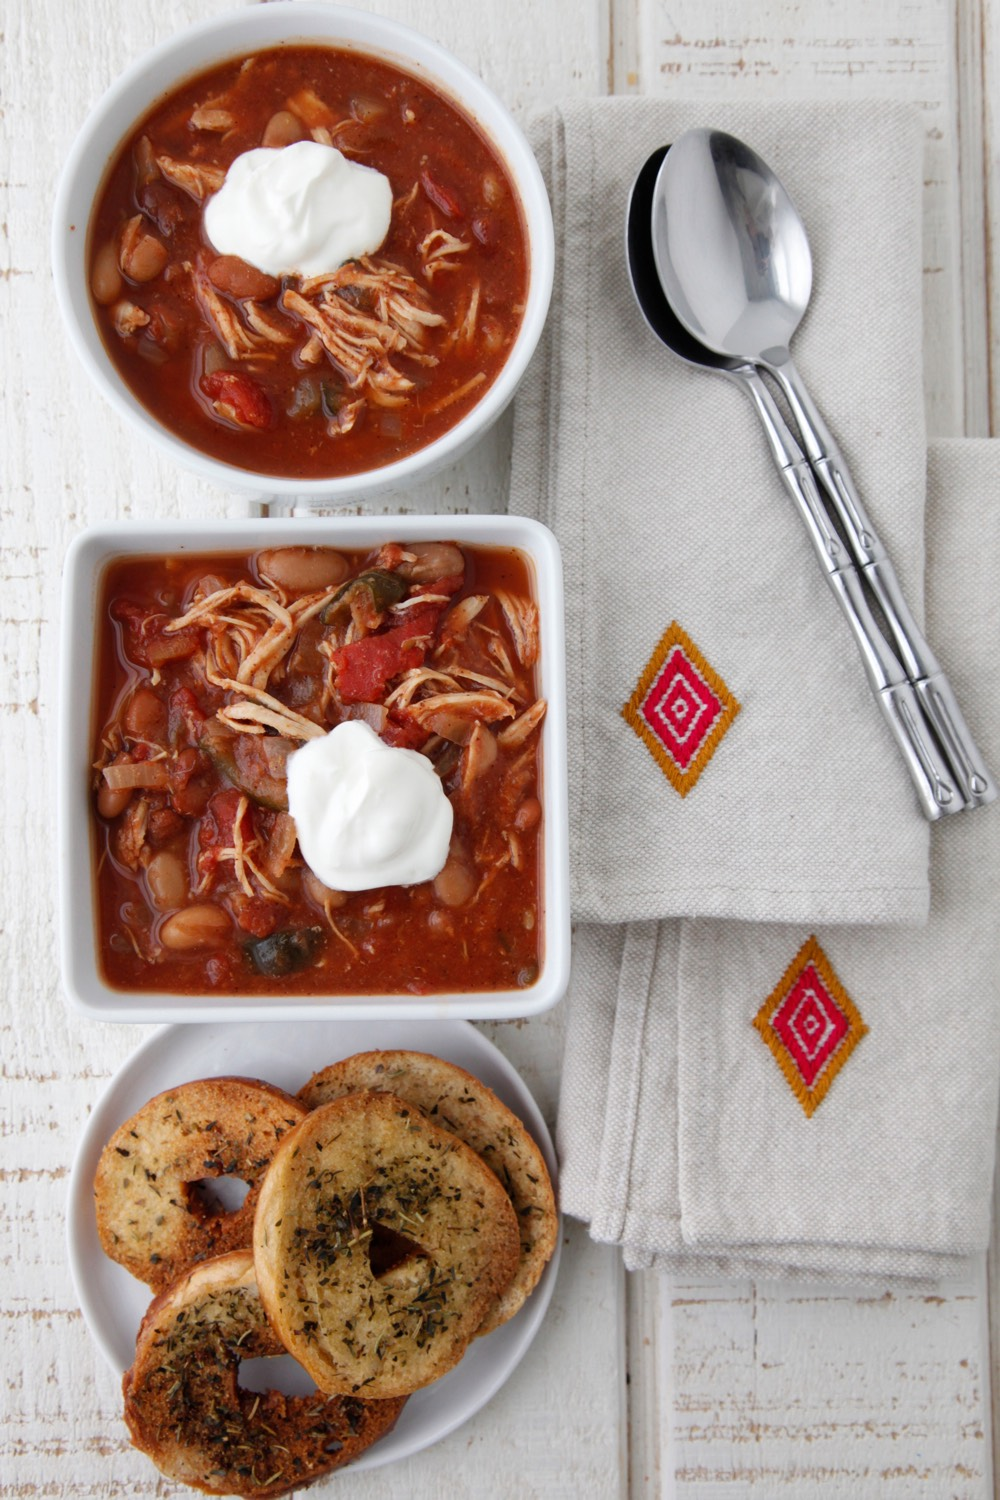 Slow Cooker Chicken Chili from Weelicious